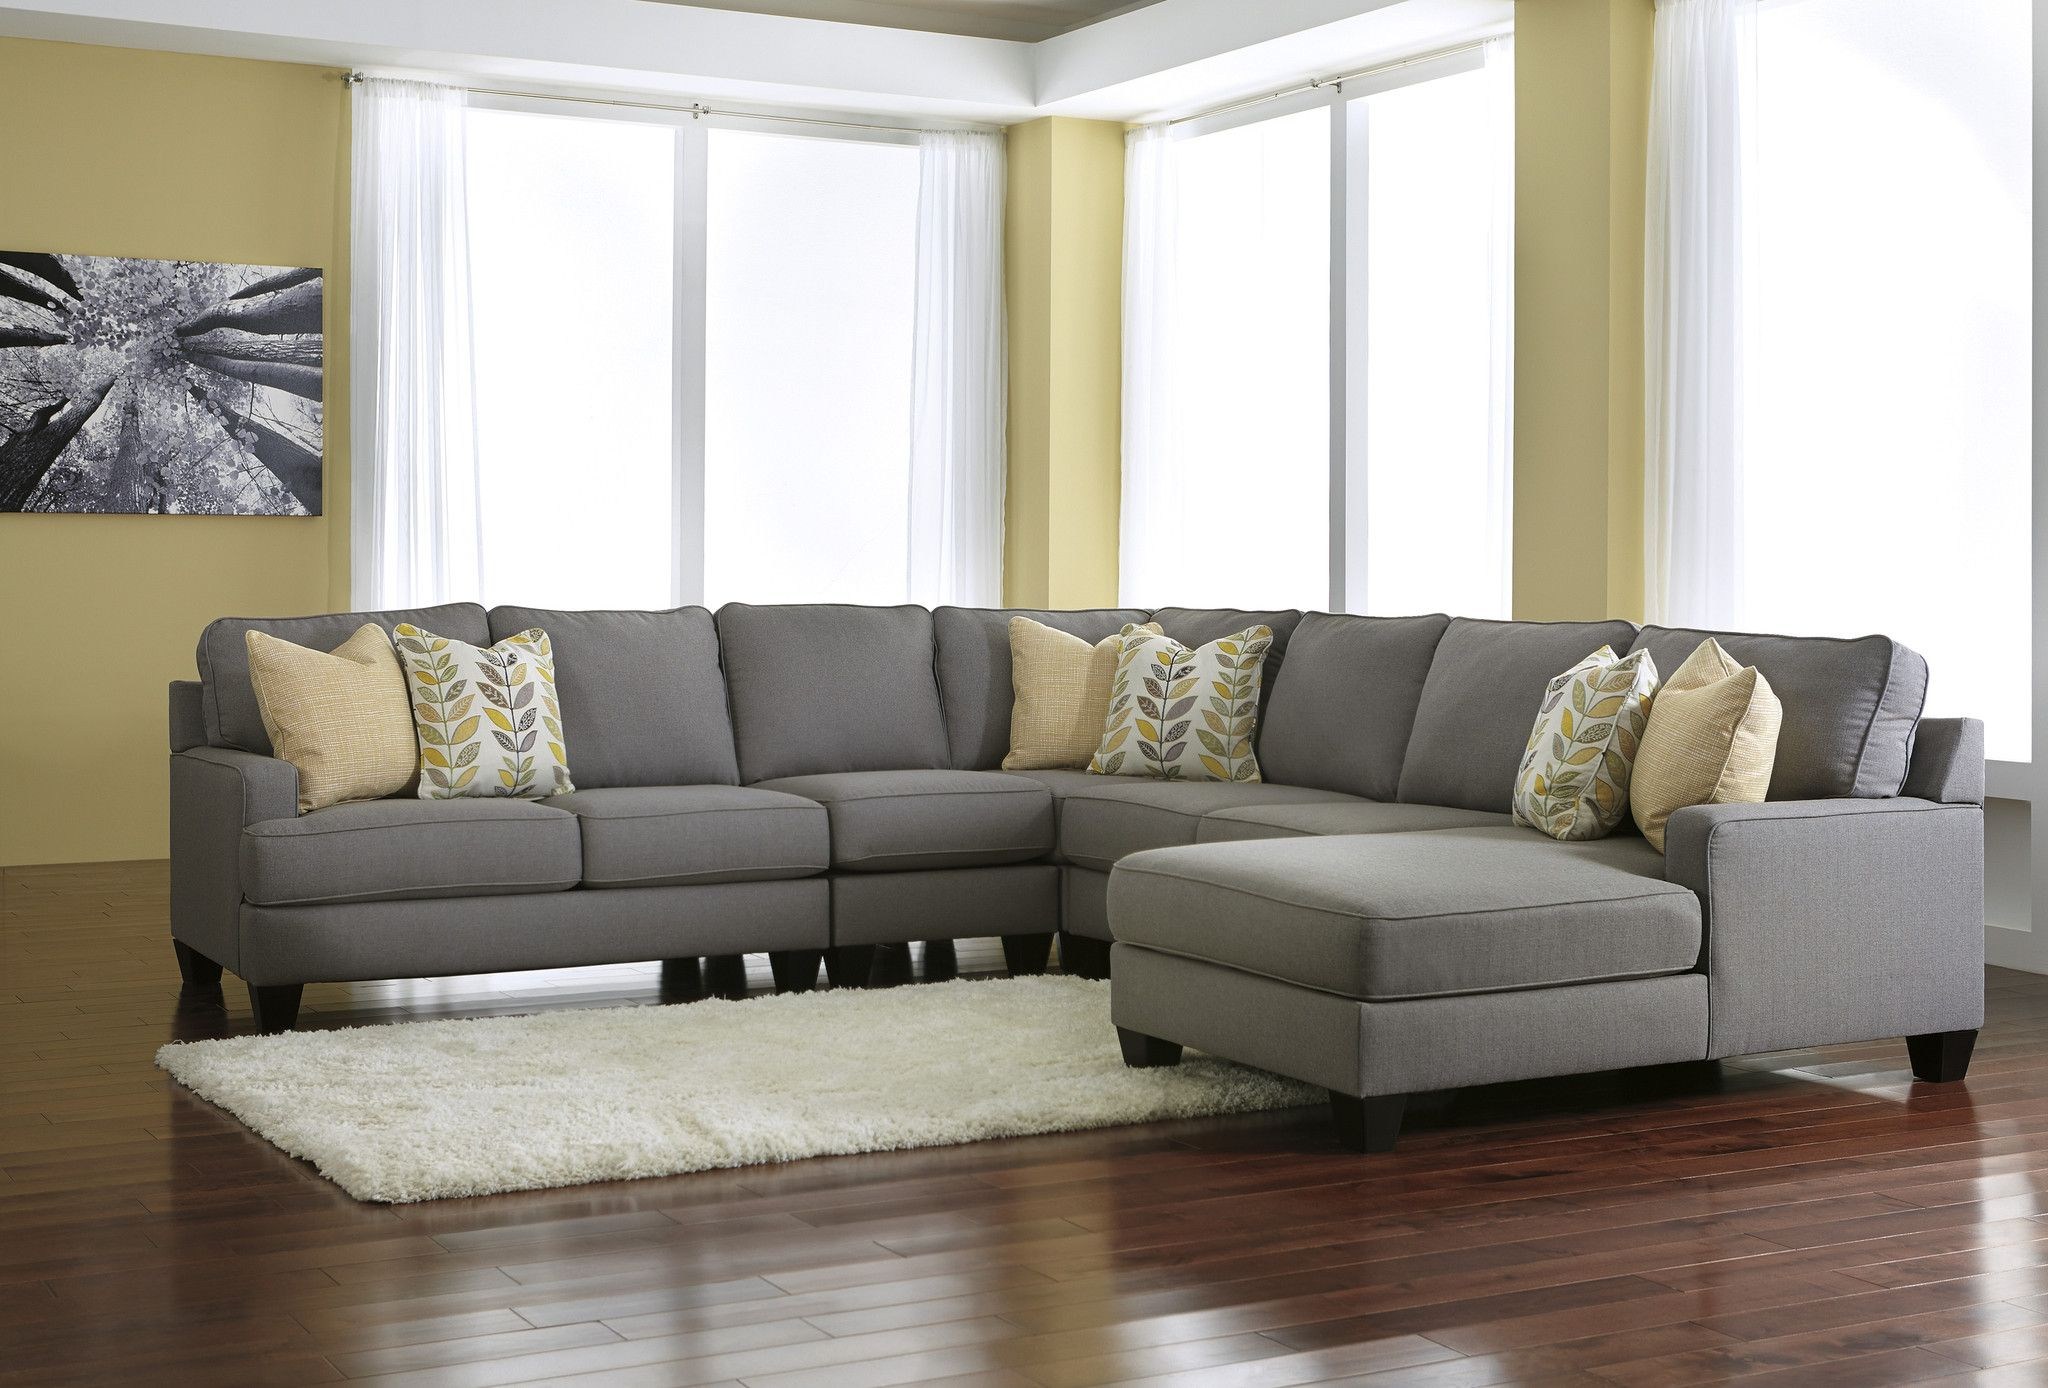 RAF Corner Chaise Sectional By Signature Design By Ashley. Get Your  Chamberly   Alloy 5 Pc. RAF Corner Chaise Sectional At Kerbyu0027s Furniture,  Mesa AZ ...